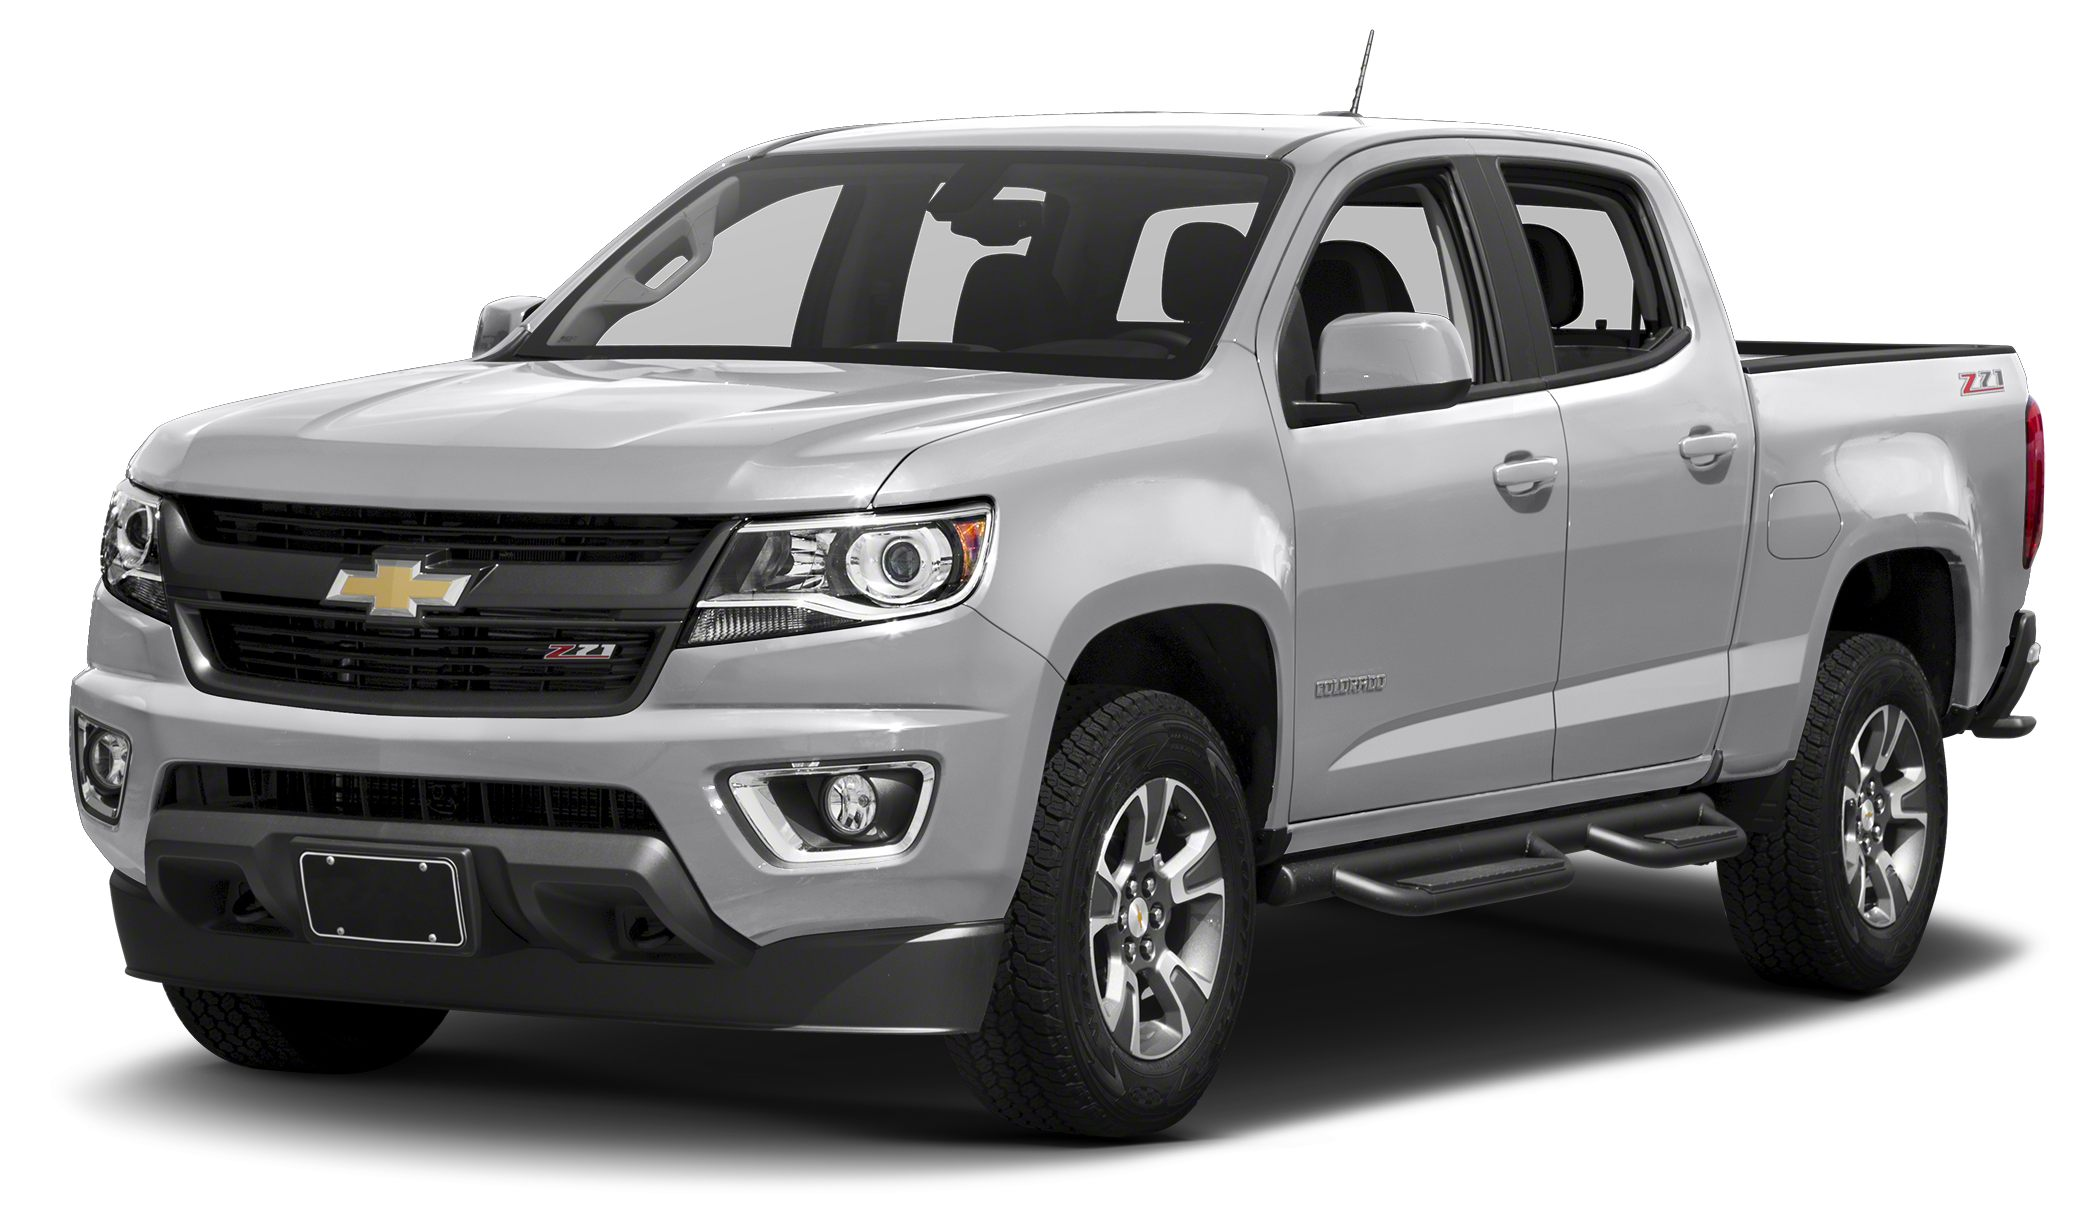 2017 Chevrolet Colorado Z71 With advanced technology to keep you connected great fuel efficiency